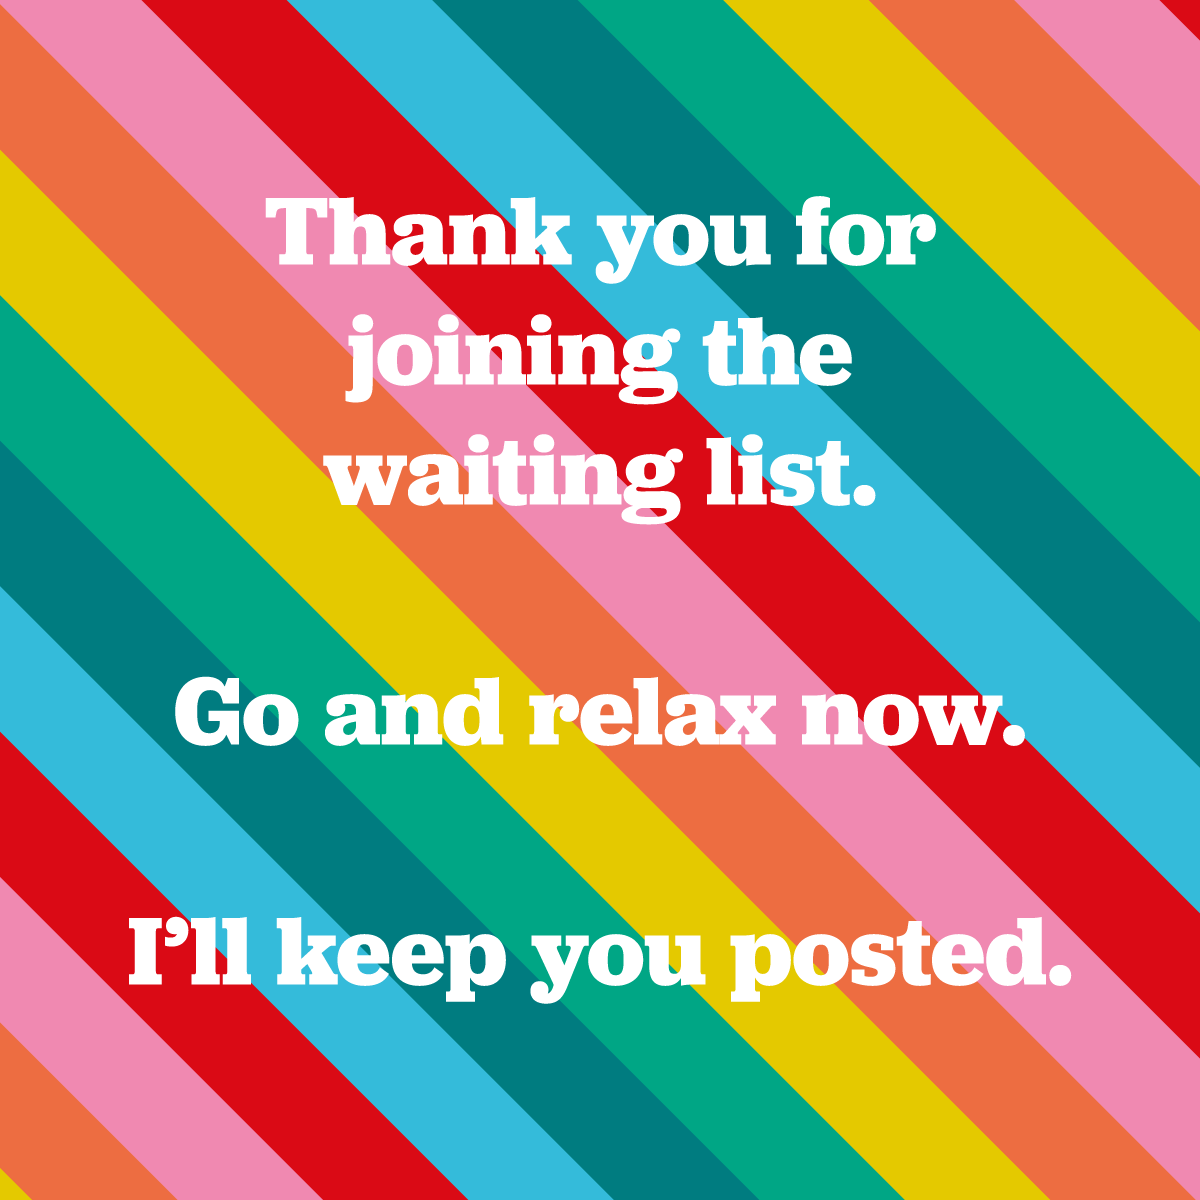 Thank you for joining the waiting list.  Go and relax now.  I'll keep you posted.